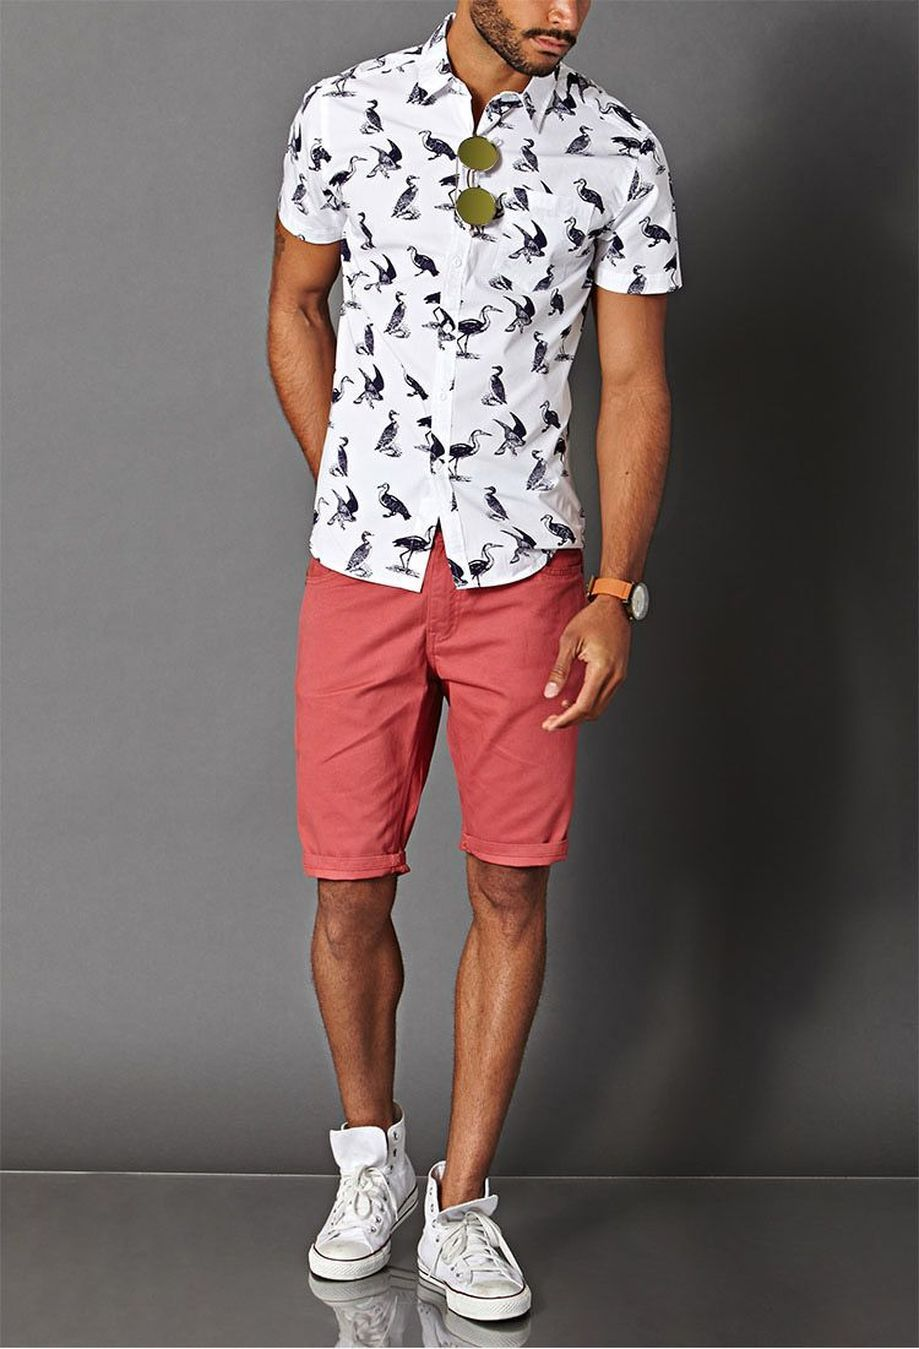 Cool Casual Men's Fashions Summer Outfits Ideas 59